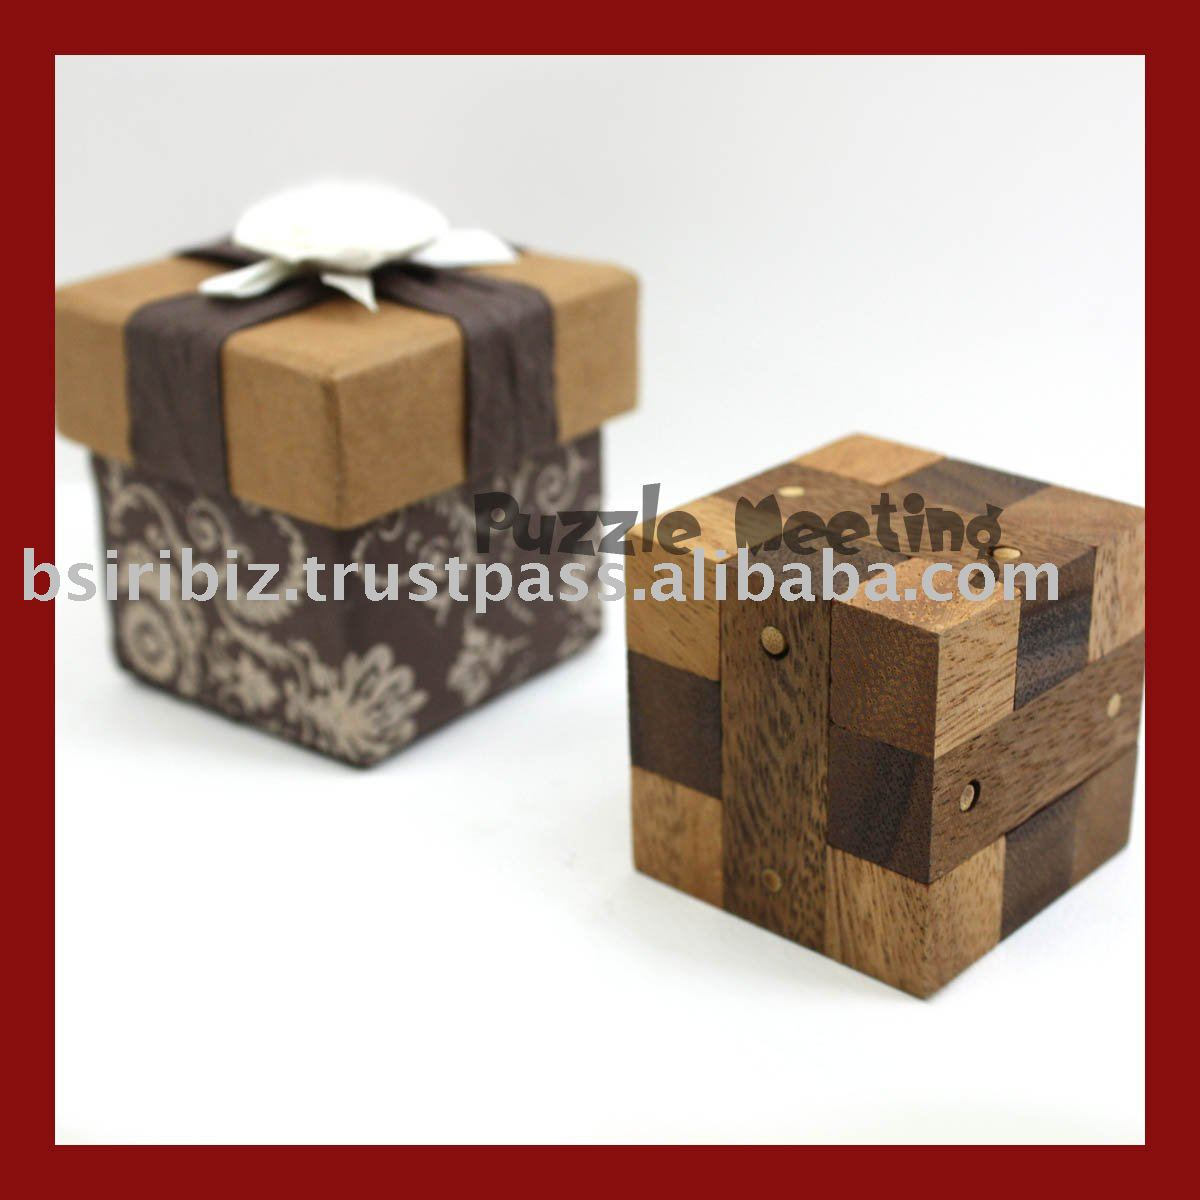 promotional item 3D wooden puzzle with gift box